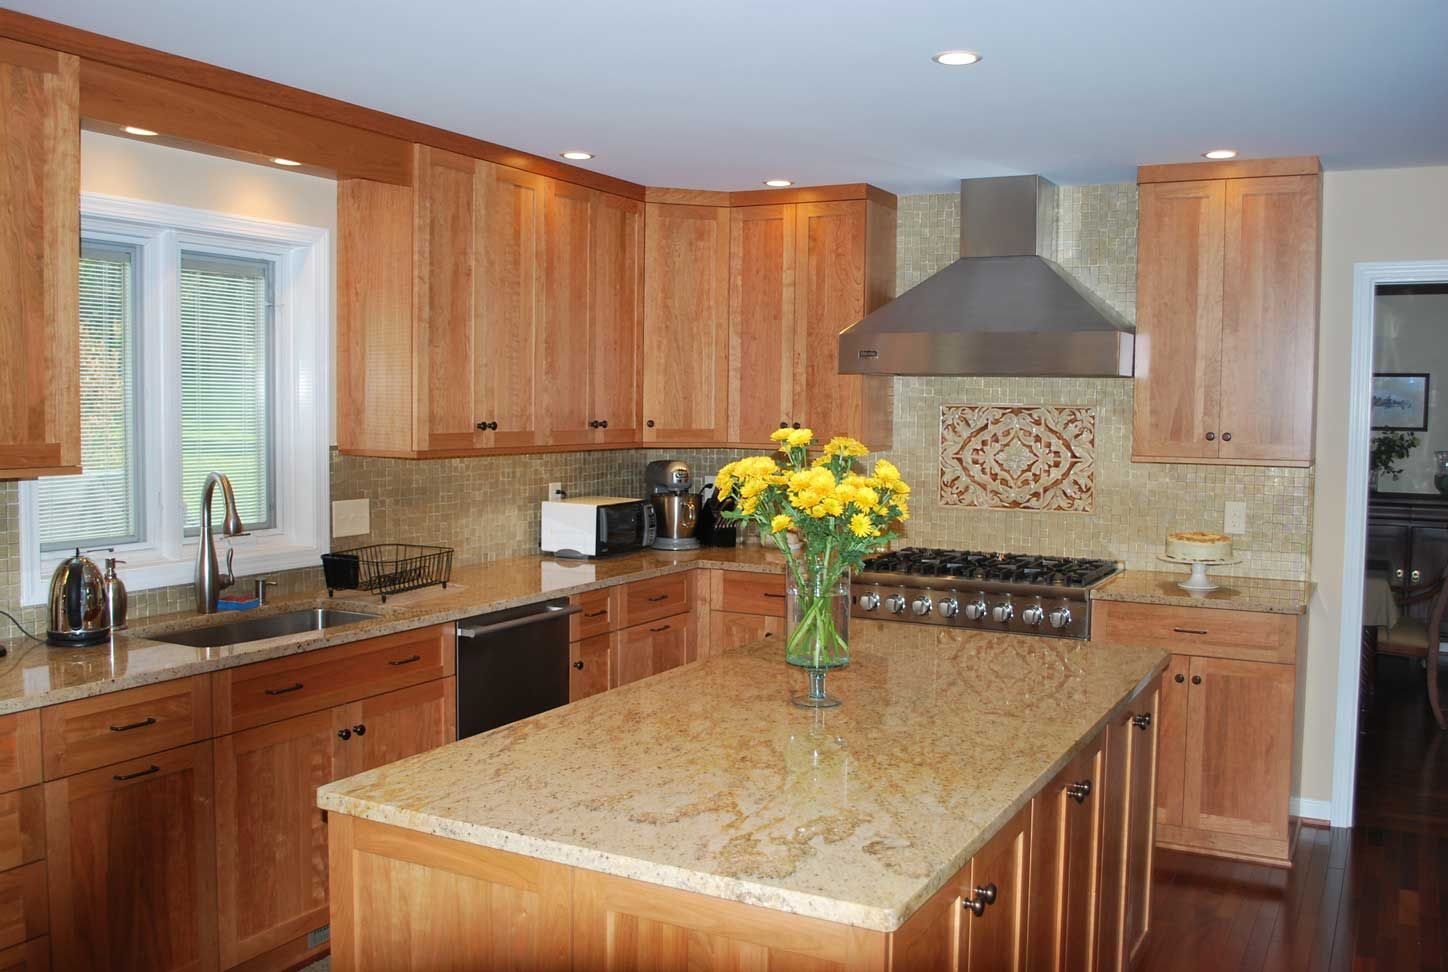 Image Result For White Countertop Natural Cherry Cabinet Cherry